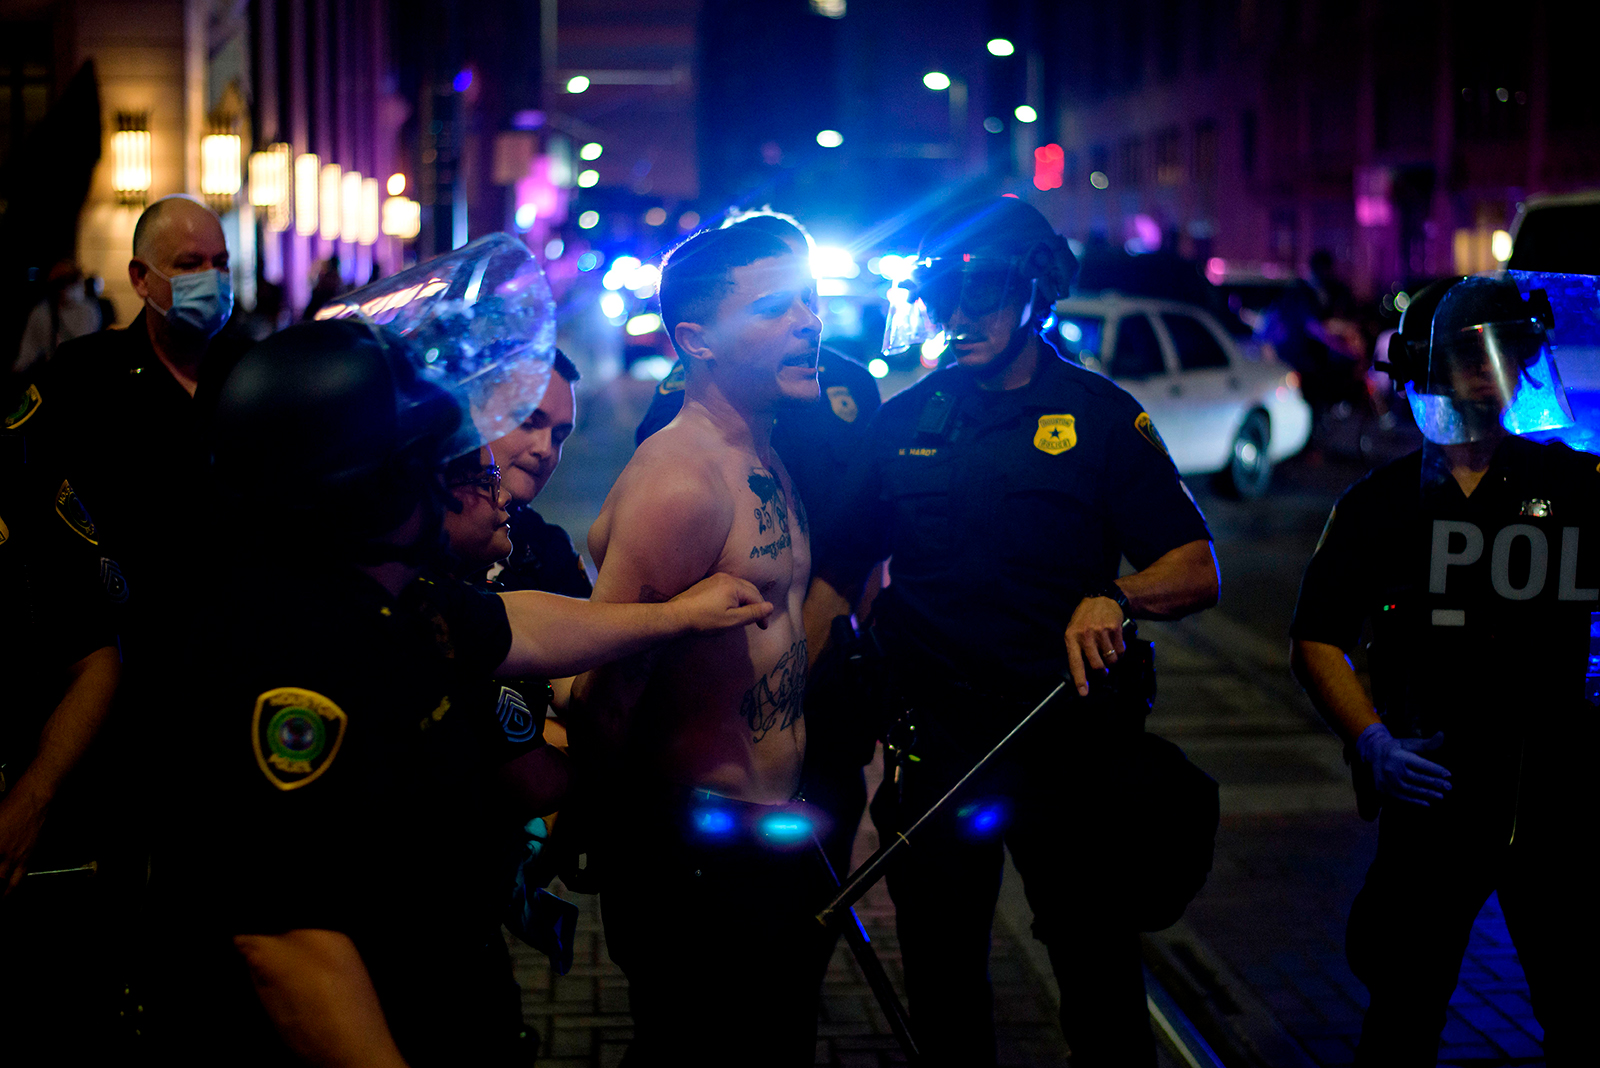 A protester is detained by police in Houston, on May 29.